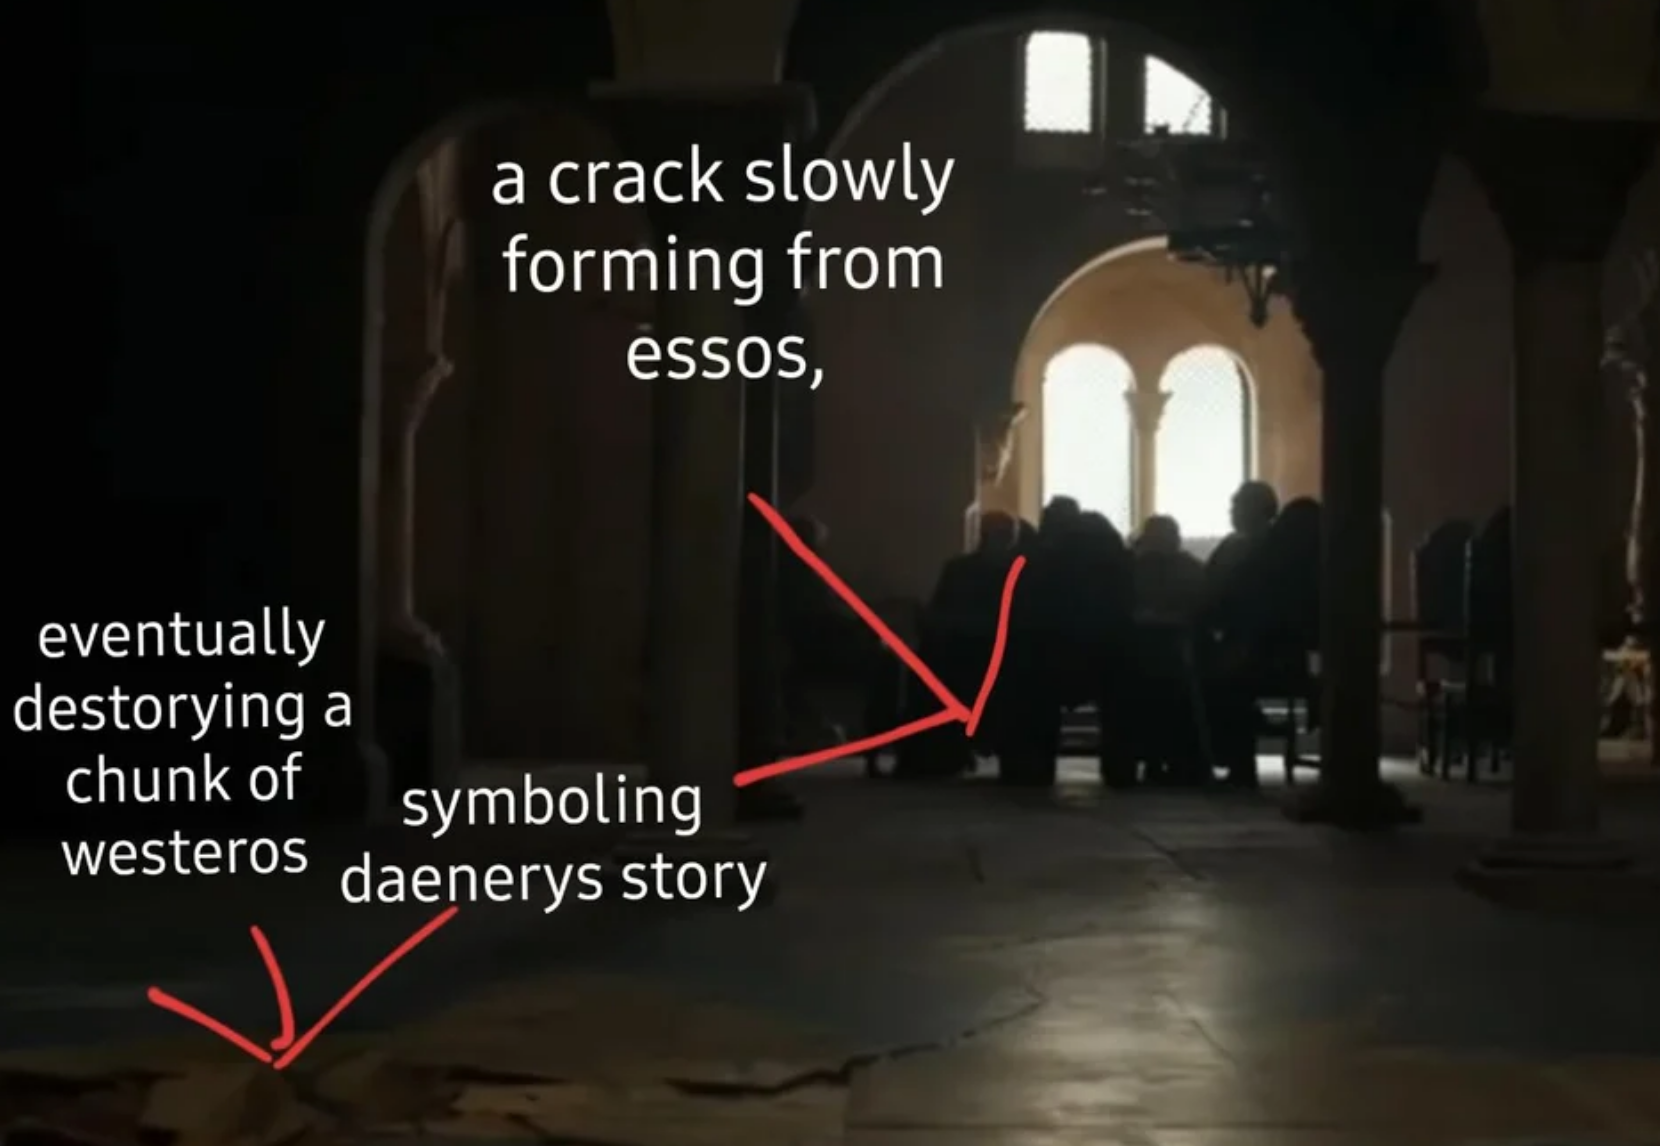 23 things you may have missed from the final episode in Game of